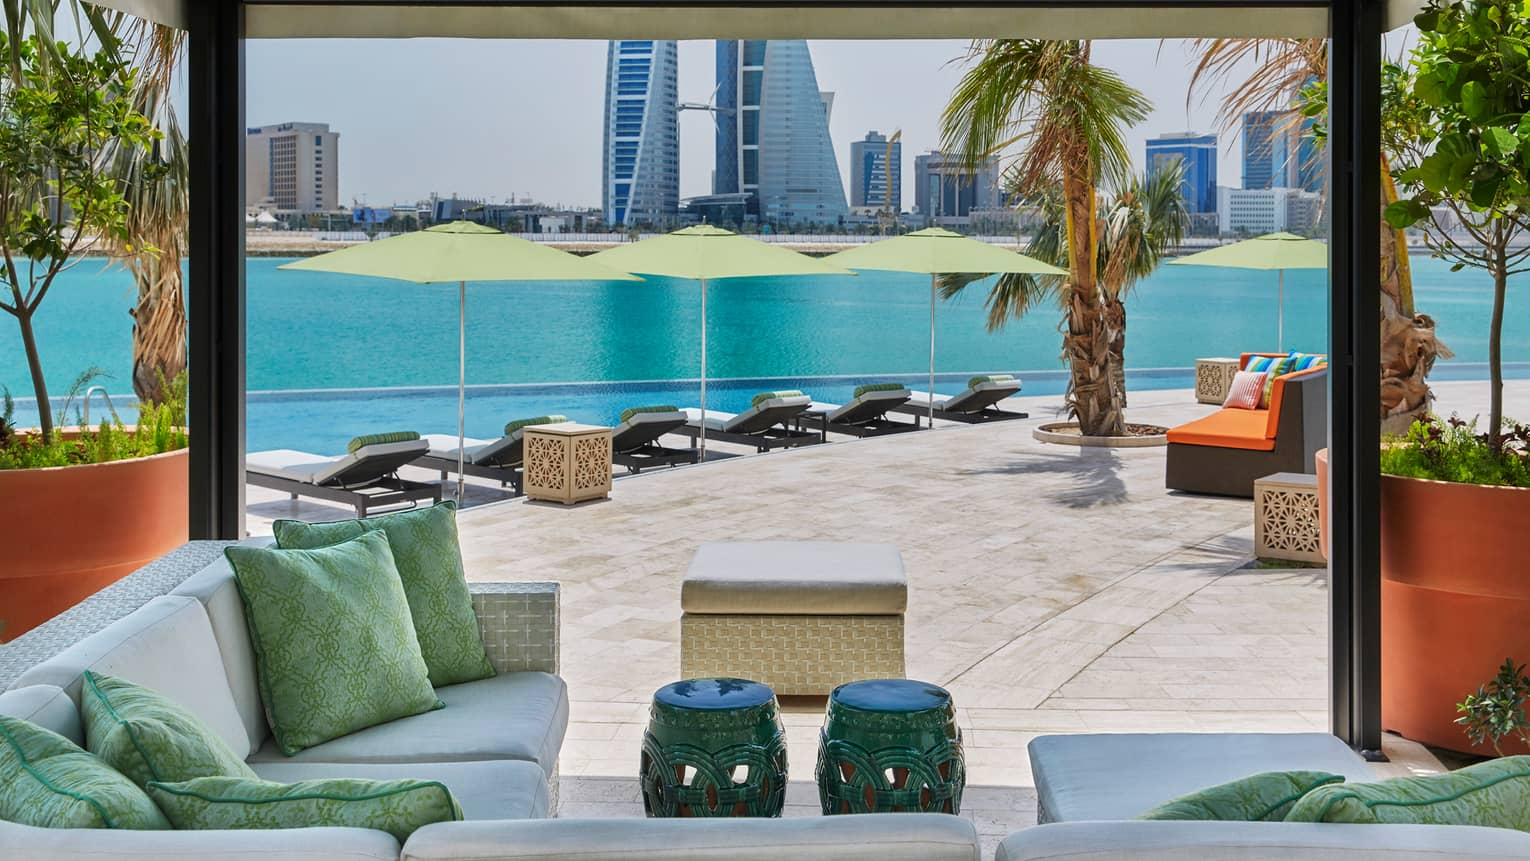 Plush outdoor patio seating and pillows under cabana, infinity swimming pool and Arabian Gulf in background